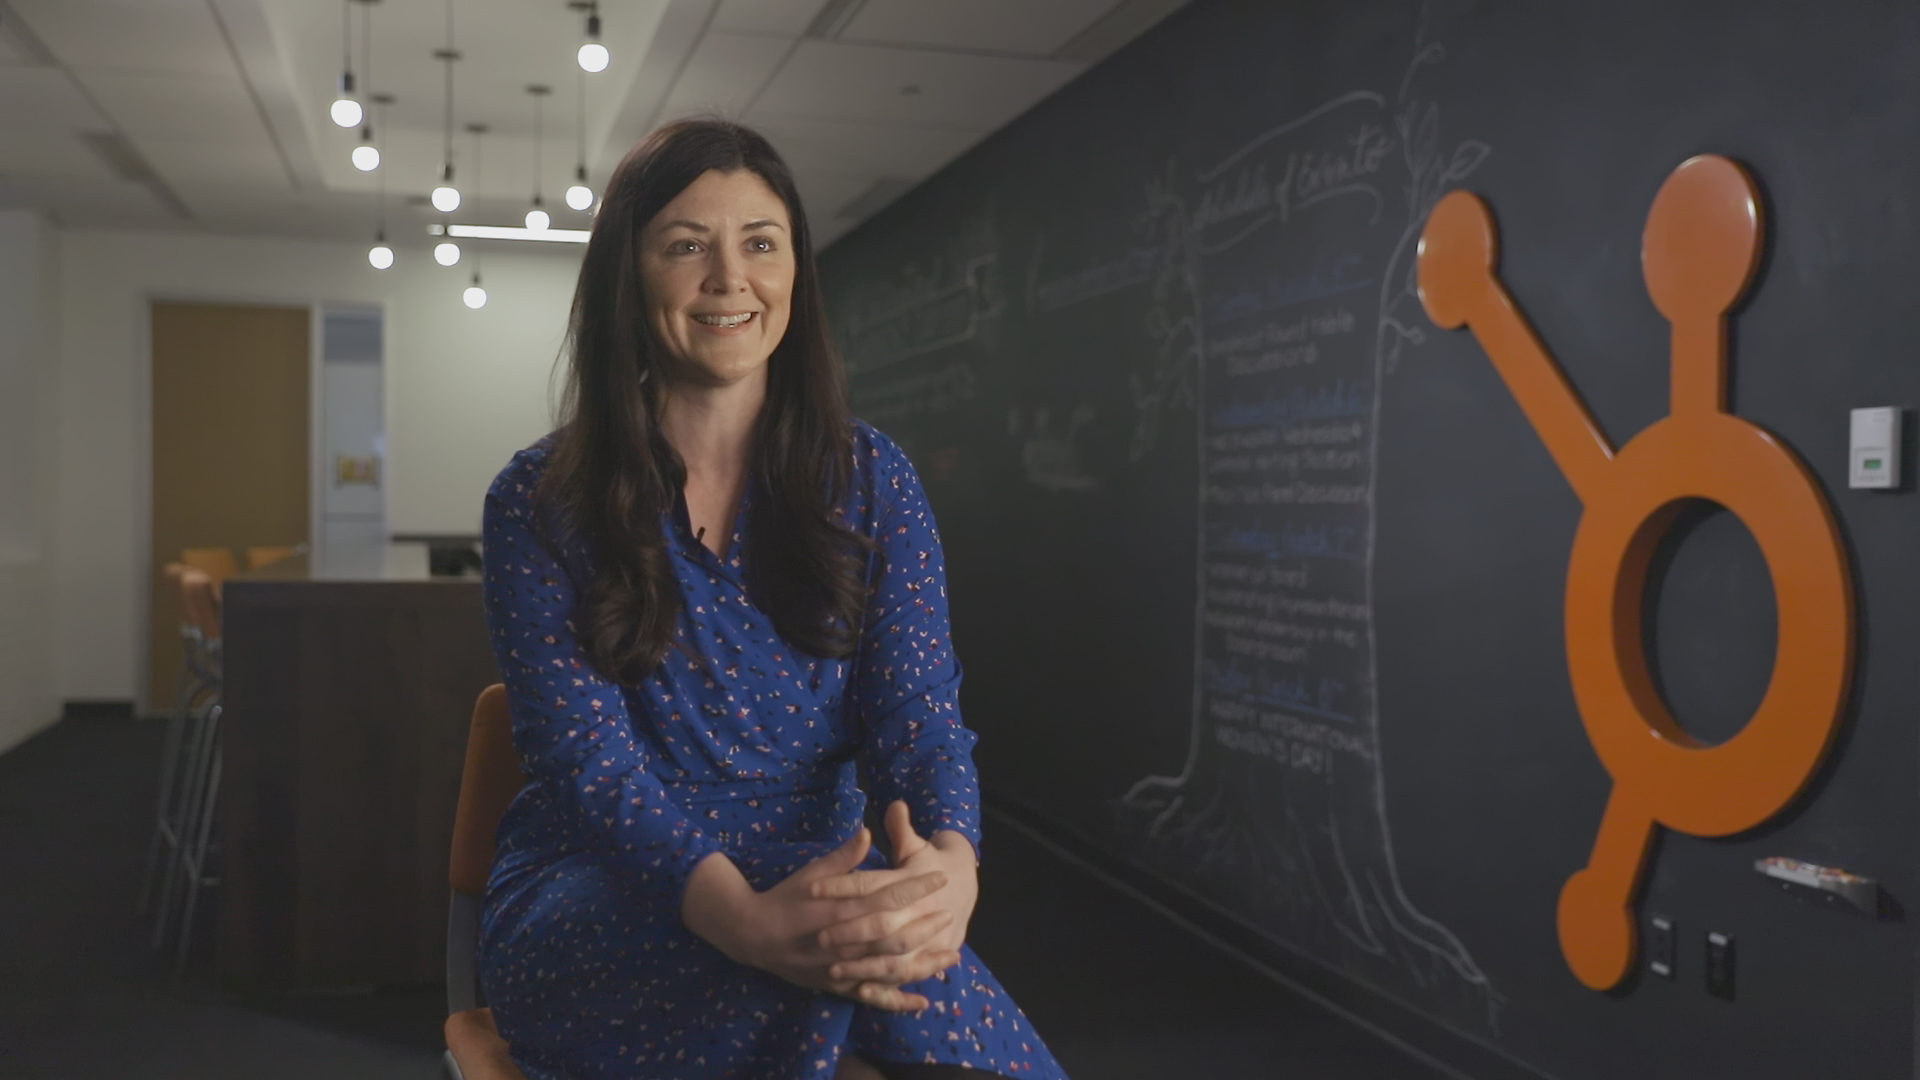 HubSpot's Chief People Officer, Katie Burke, explains how the company uses Slack to scale its award-winning culture